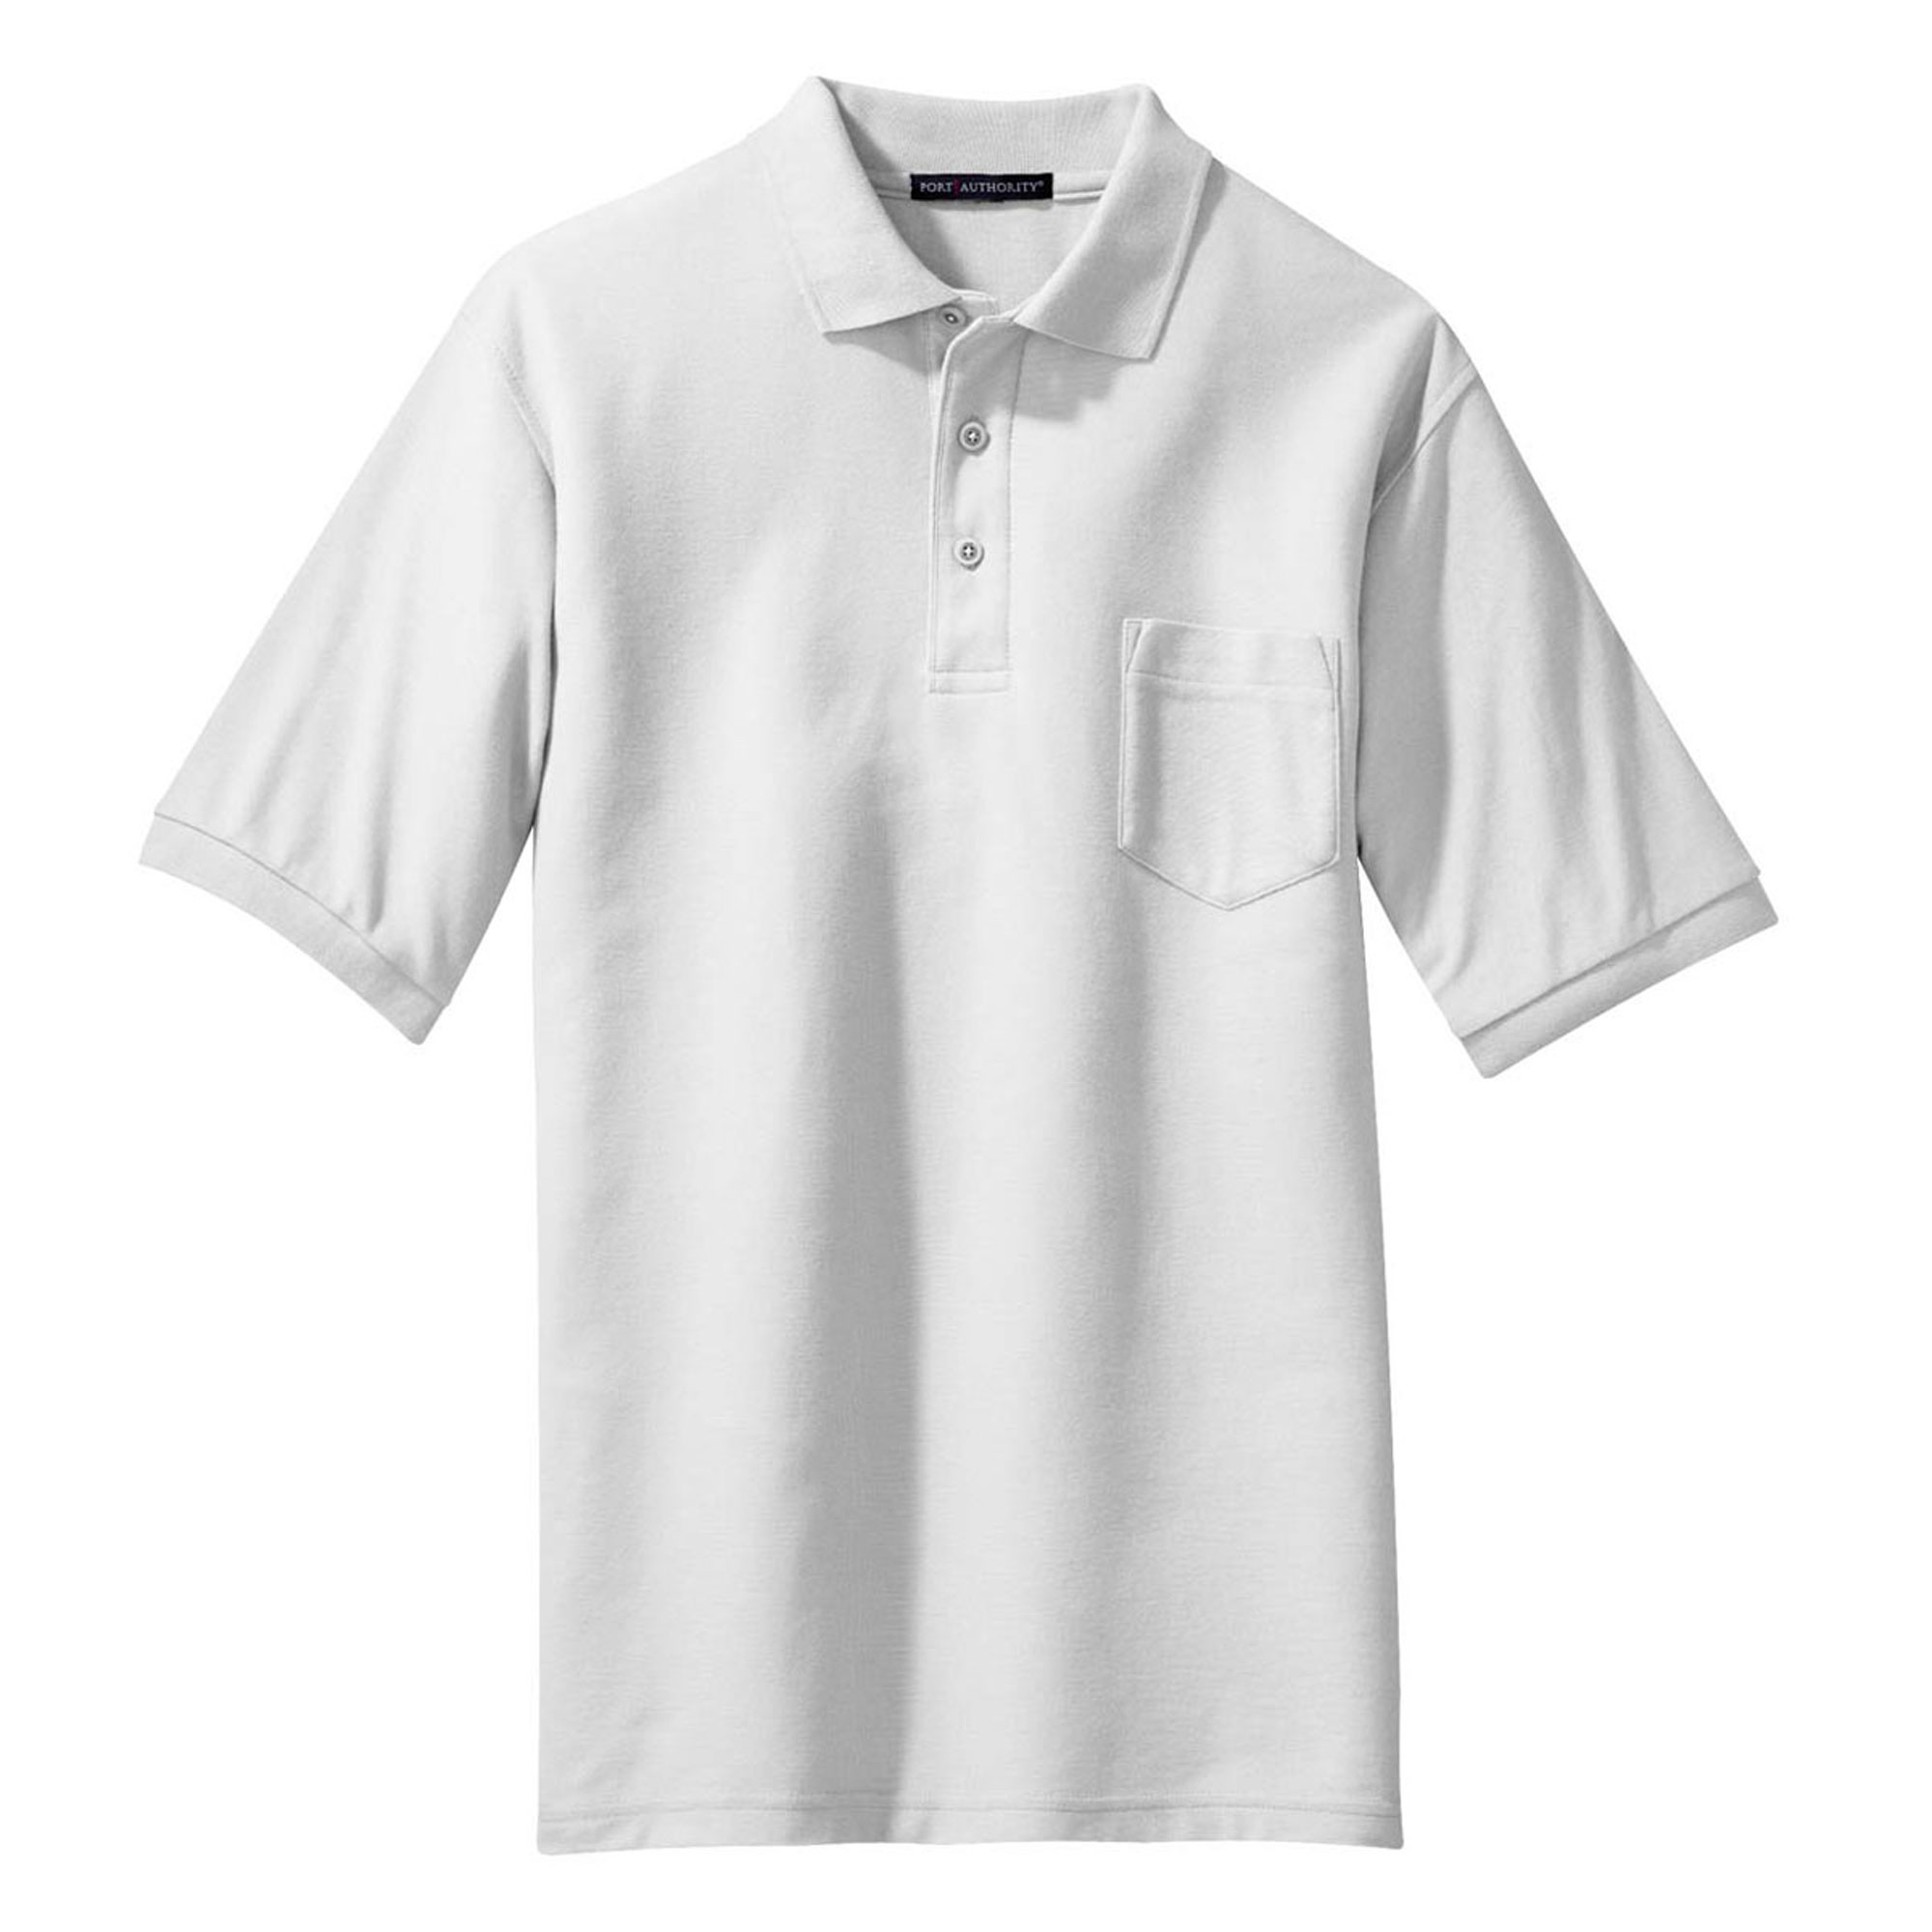 Port Authority Men's Silk Touch Knit Collar Polo Shirt